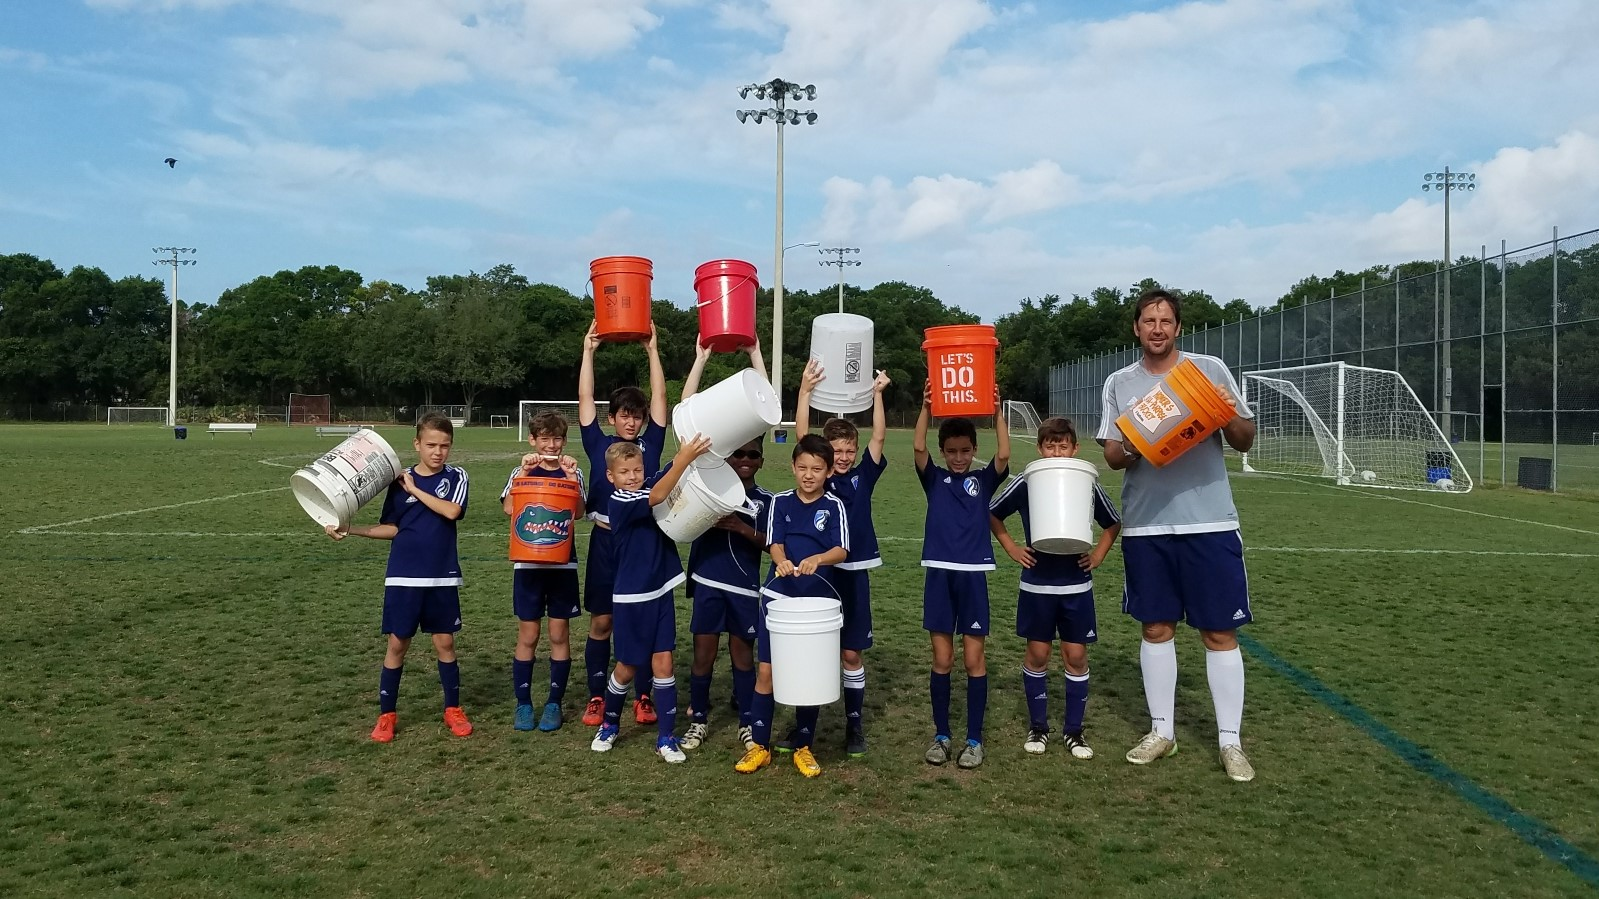 2006 Boys score big on Earth Day 2017!